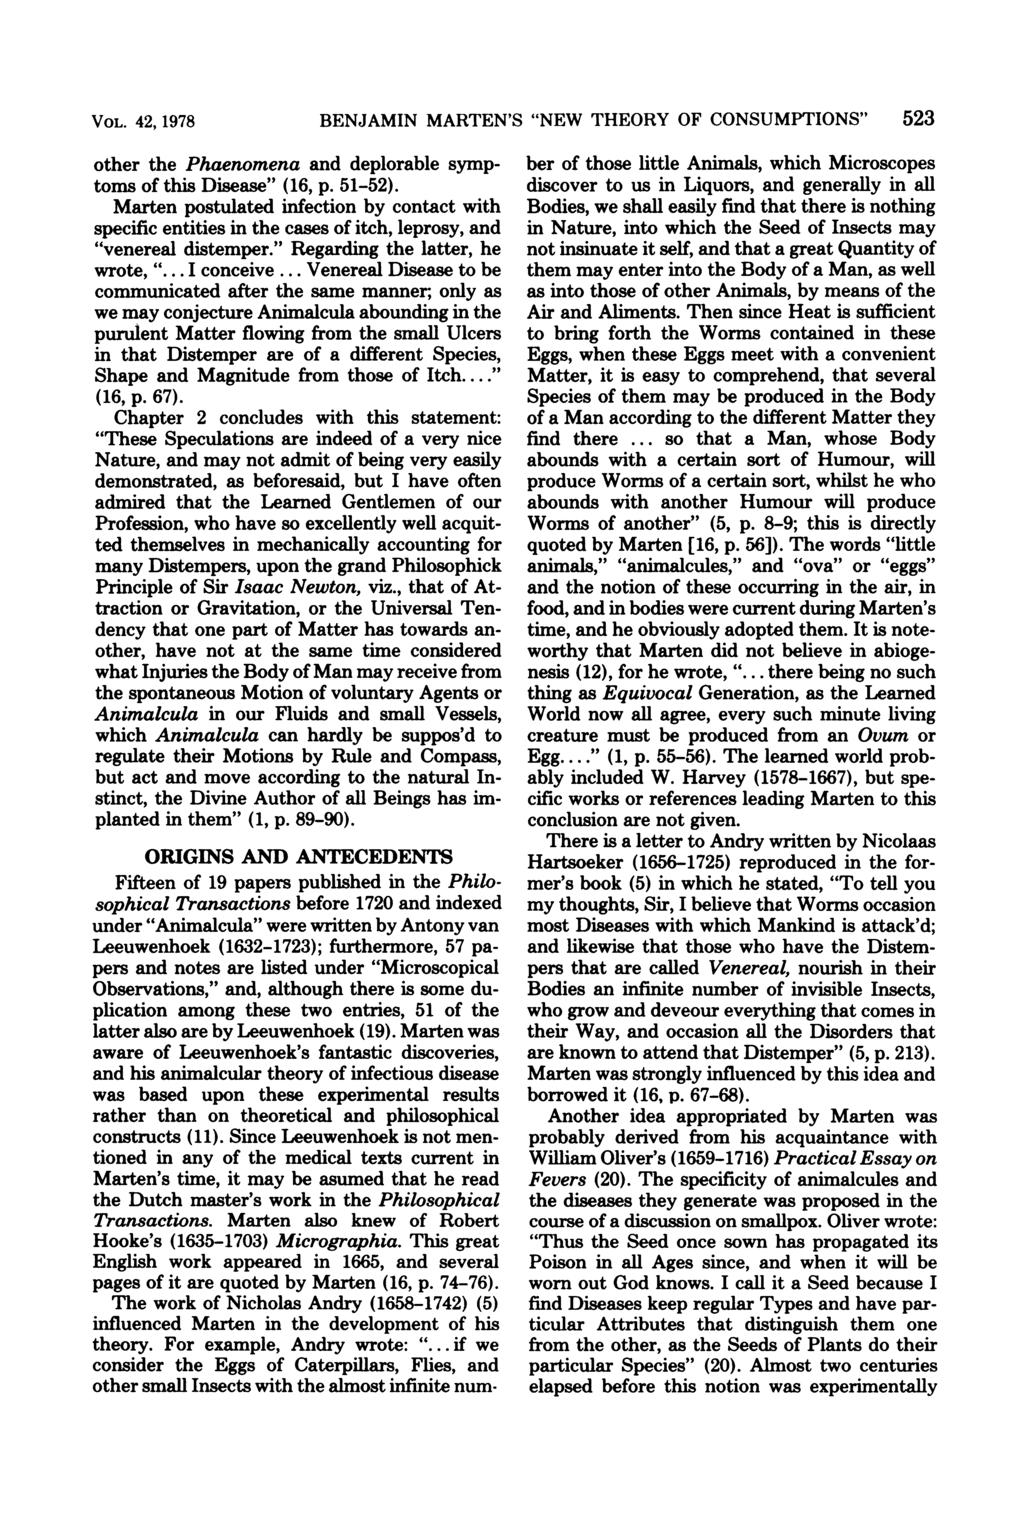 "VOL. 42, 1978 other the Phaenomena and deplorable symptoms of this Disease"" (16, p. 51-52)."